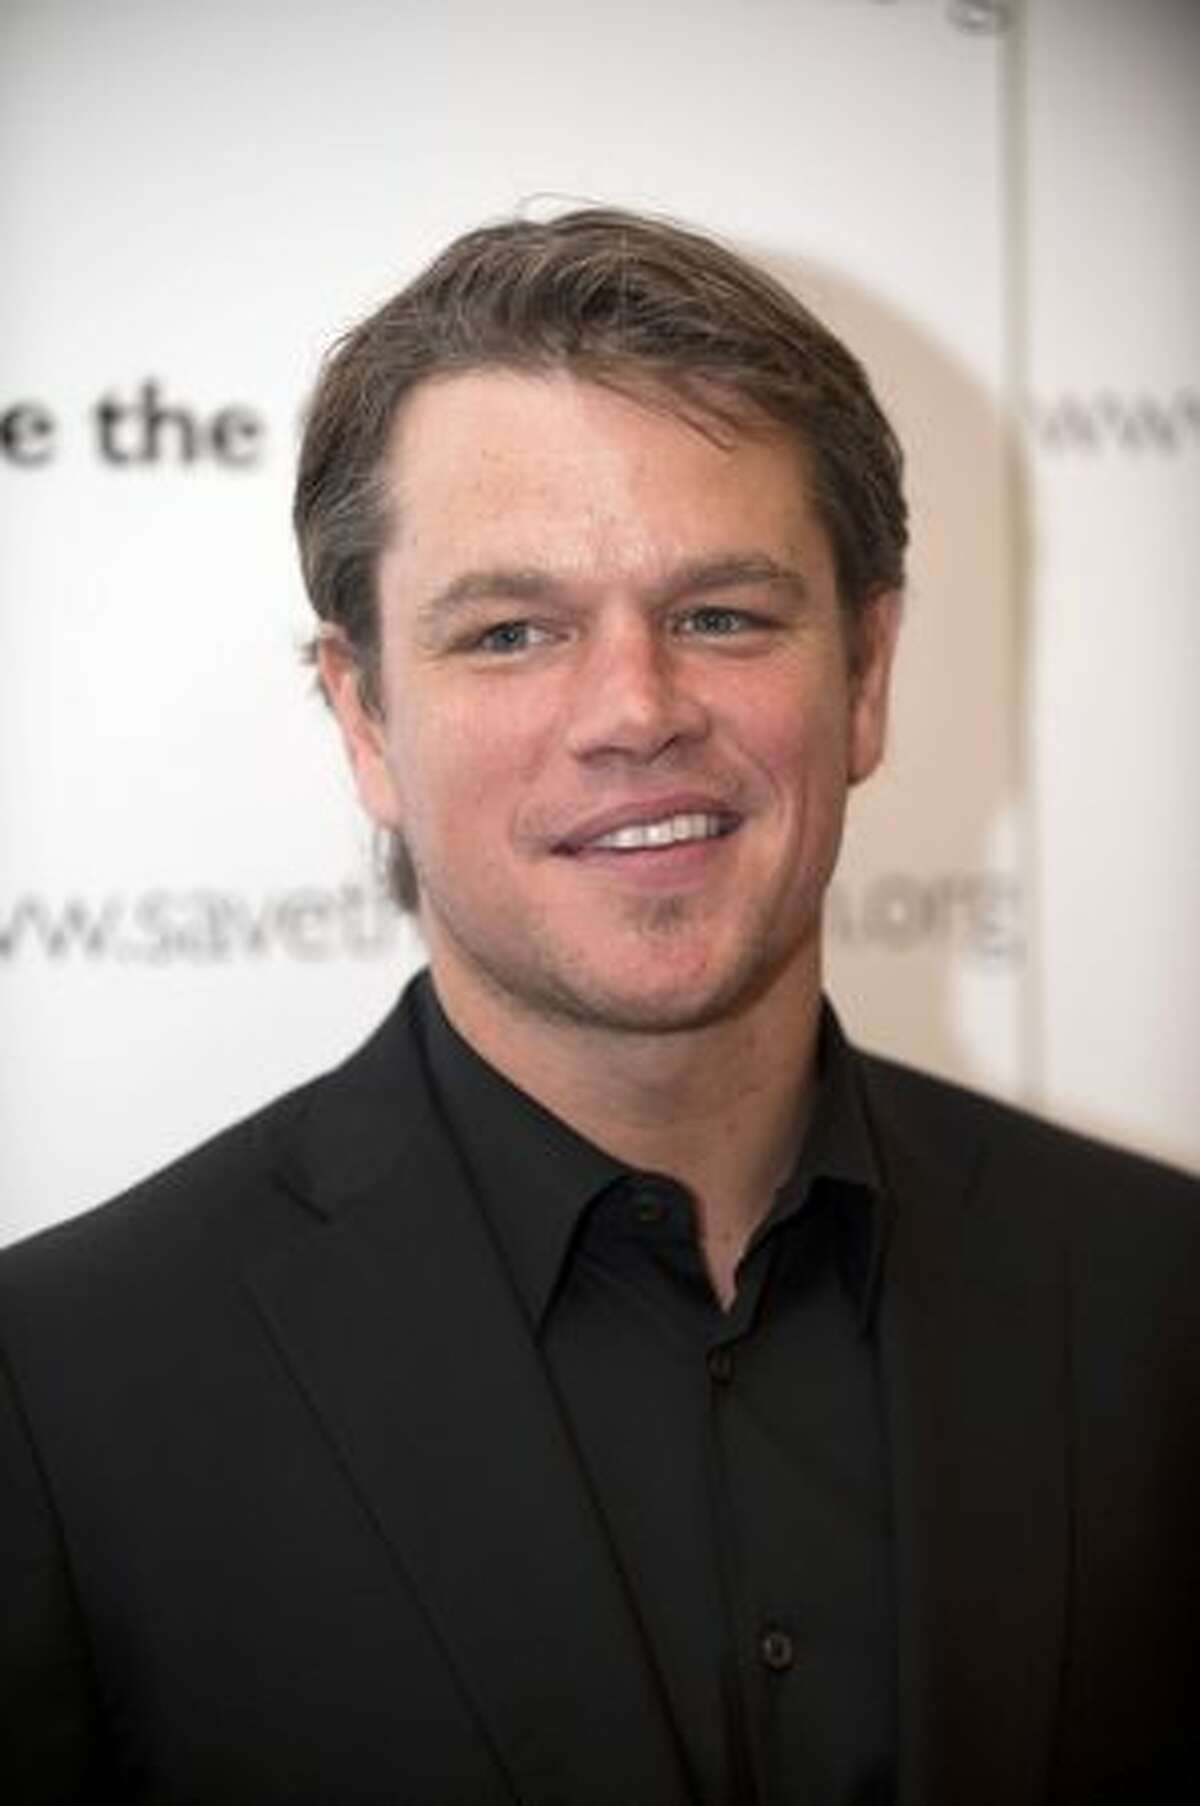 Matt Damon, May 20, 2010, age 39.